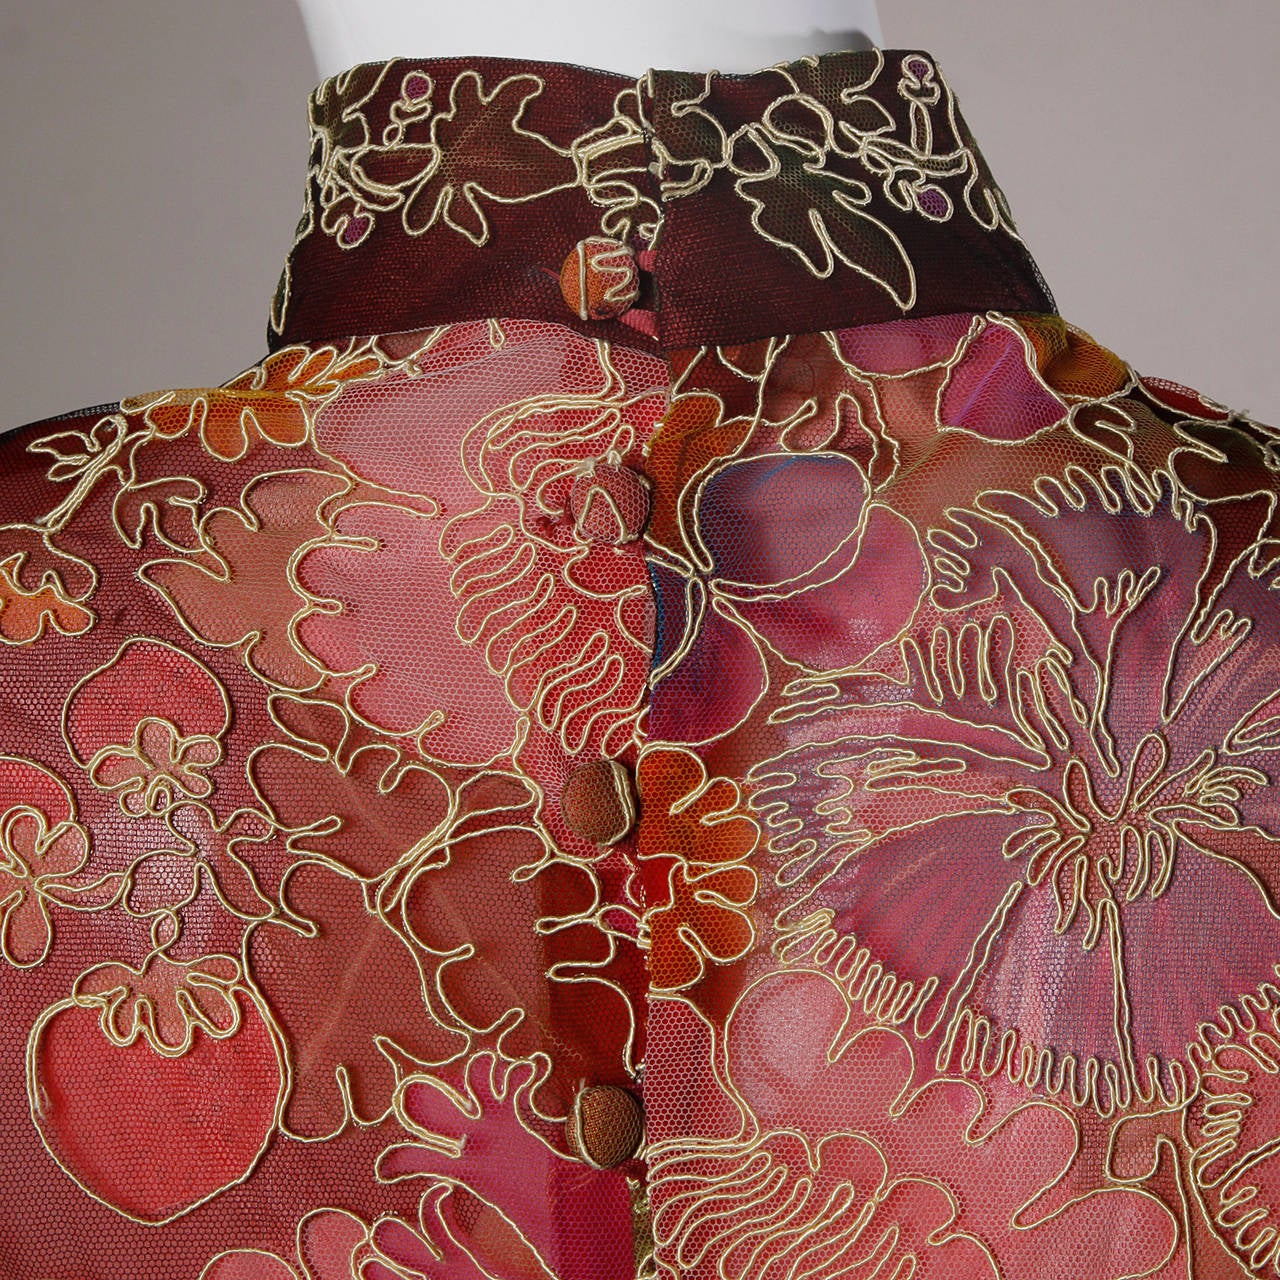 Donald Brooks Unworn Vintage 1970s Hand Painted Tulle Embroidered Dress For Sale 2